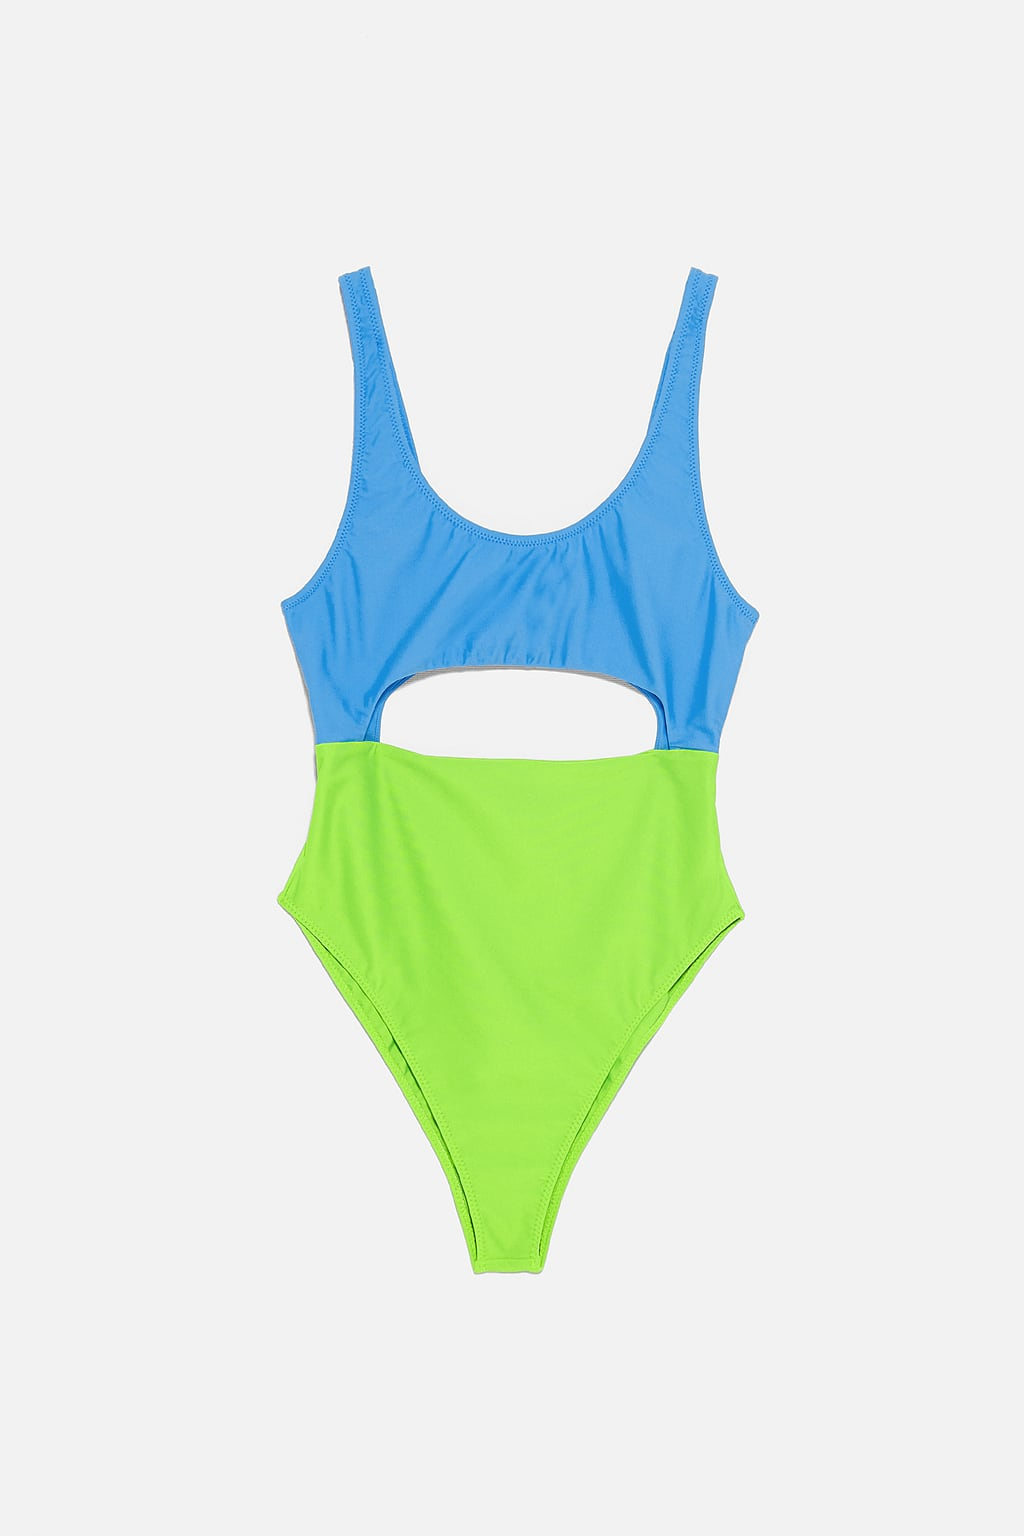 - COLOUR BLOCK SWIMSUIT $39.90 CAD